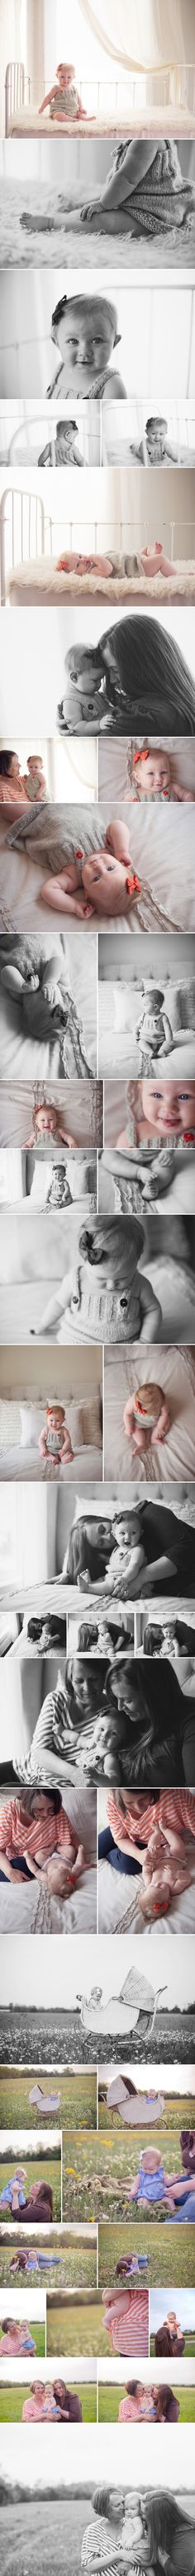 six month baby photos with mother and grandmother outdoors by Raye Law of Arkansas